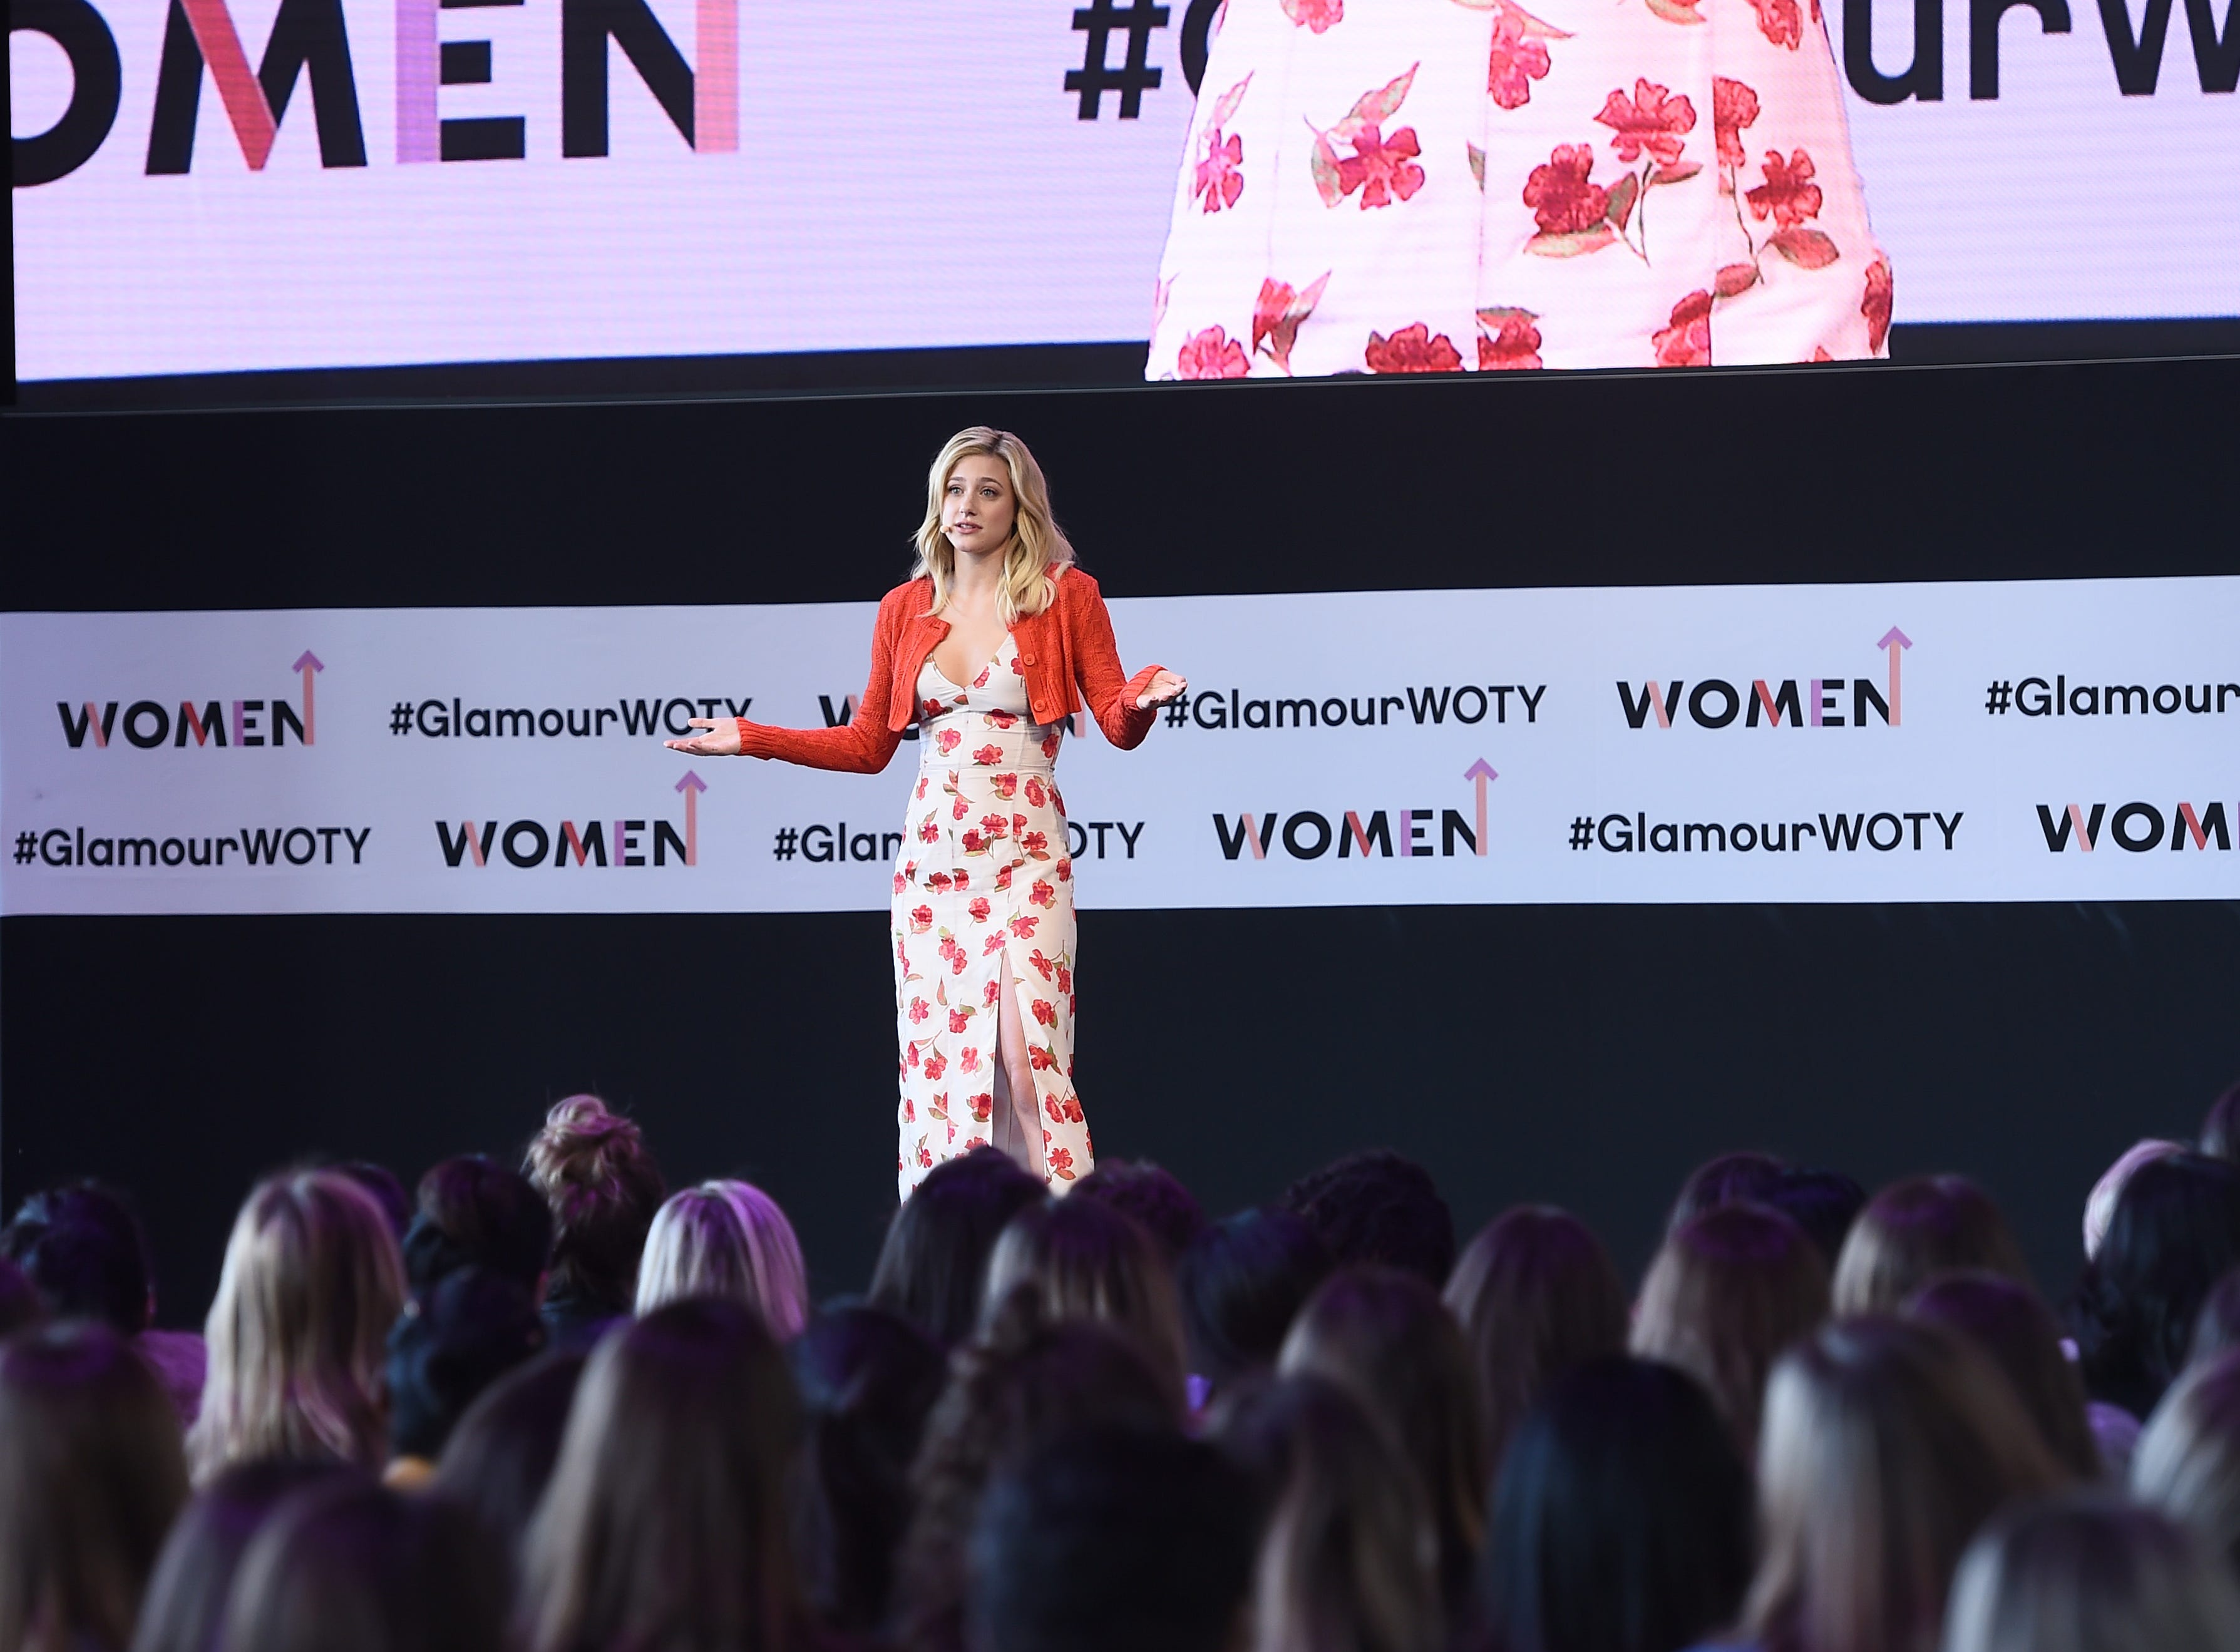 NEW YORK, NY - NOVEMBER 11:  Lili Reinhart speaks onstage during panel at 2018 Glamour Women Of The Year Summit:  Women Rise at Spring Studios on November 11, 2018 in New York City.  (Photo by Ilya S. Savenok/Getty Images for Glamour) ORG XMIT: 775248521 ORIG FILE ID: 1060237660